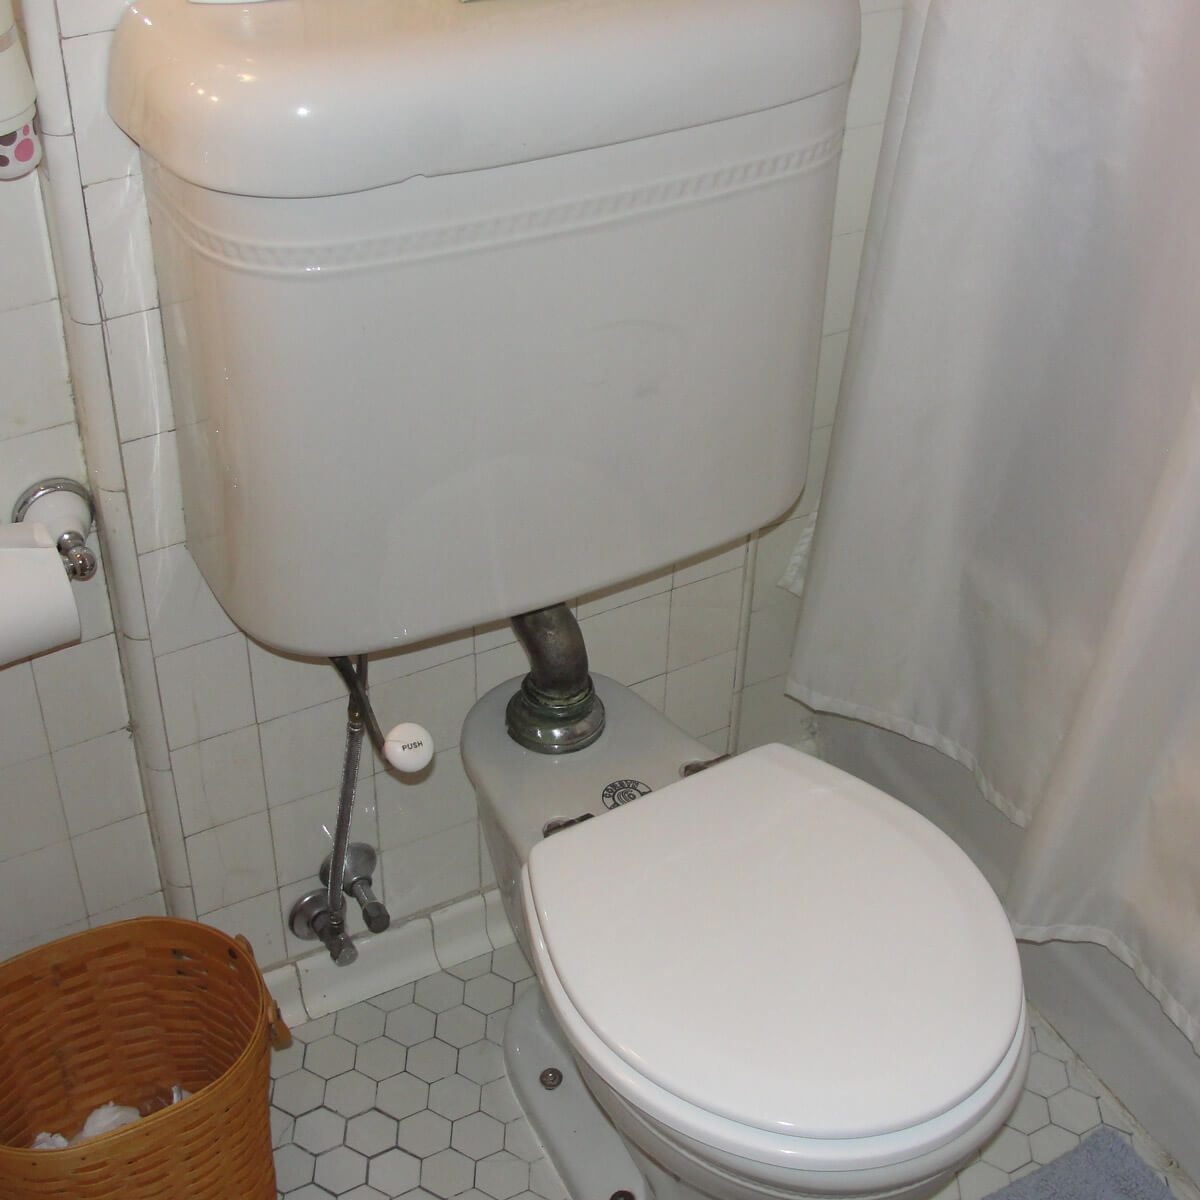 Stick shift toilet